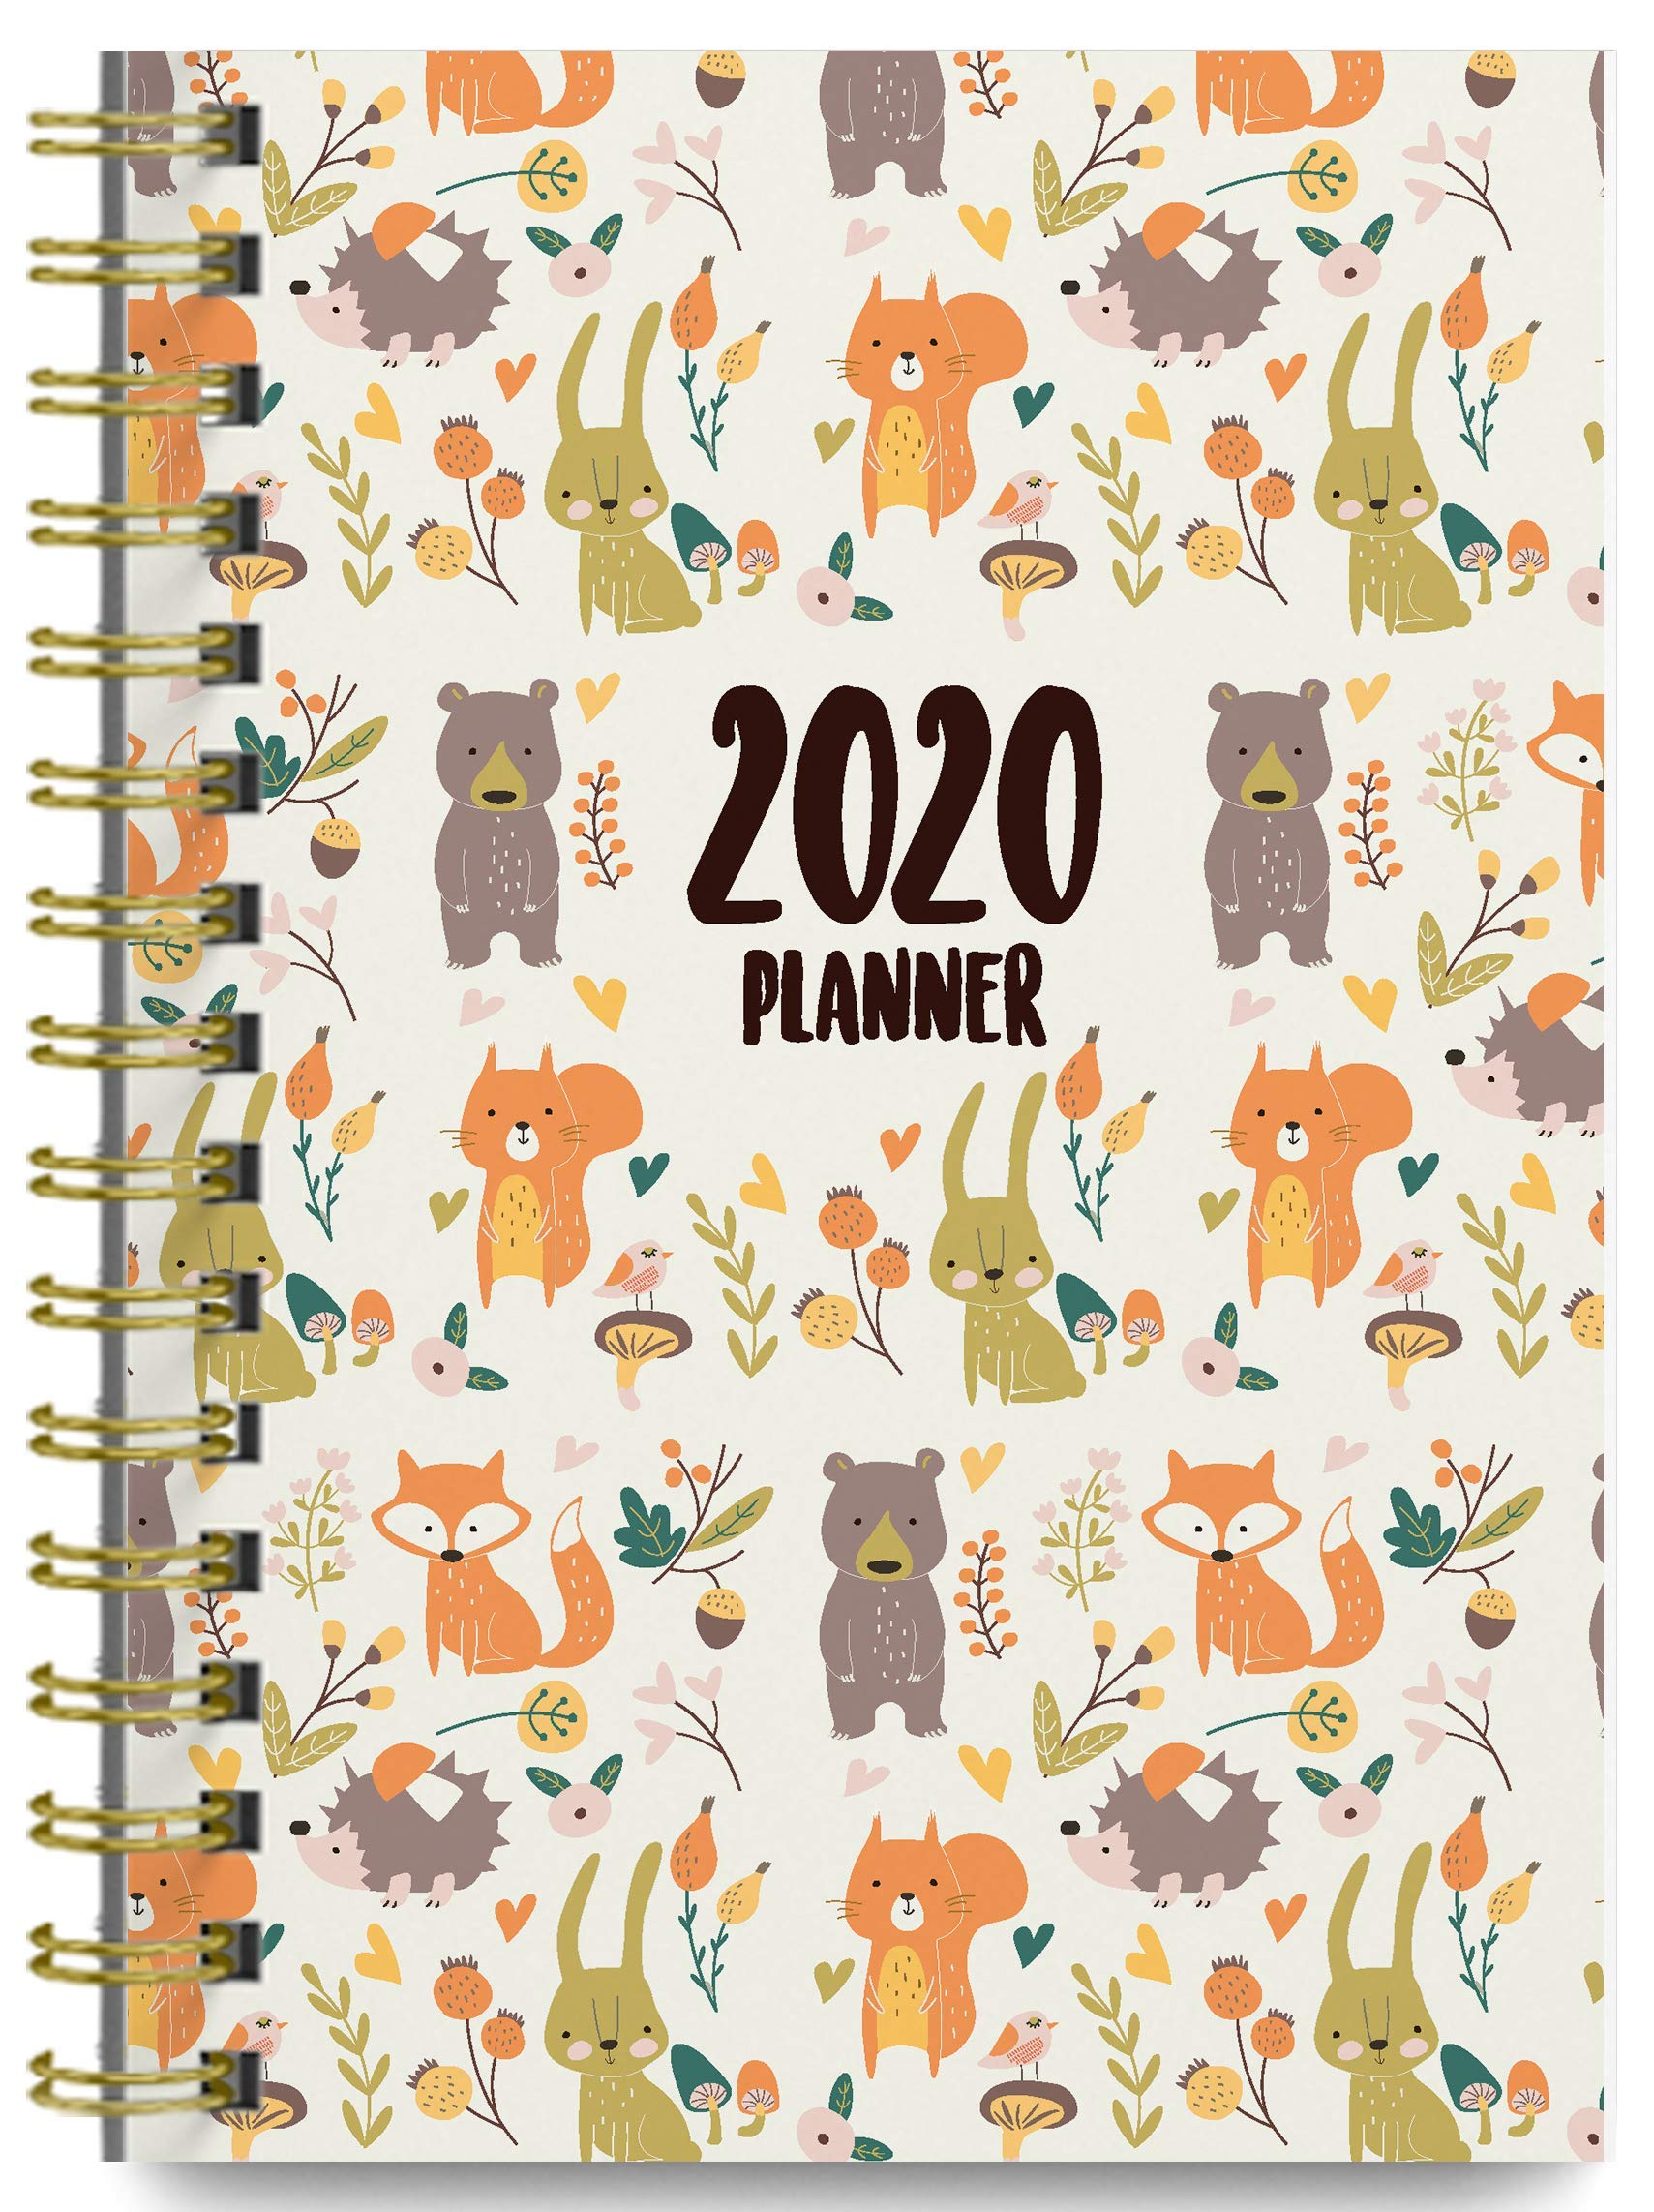 2020 Woodlands Soft Cover Academic Year Day Planner Book by Bright Day, Weekly Monthly Dated Agenda Spiral Bound Organizer, 16 Month Calendar 6.25 x 8.25 Inch,